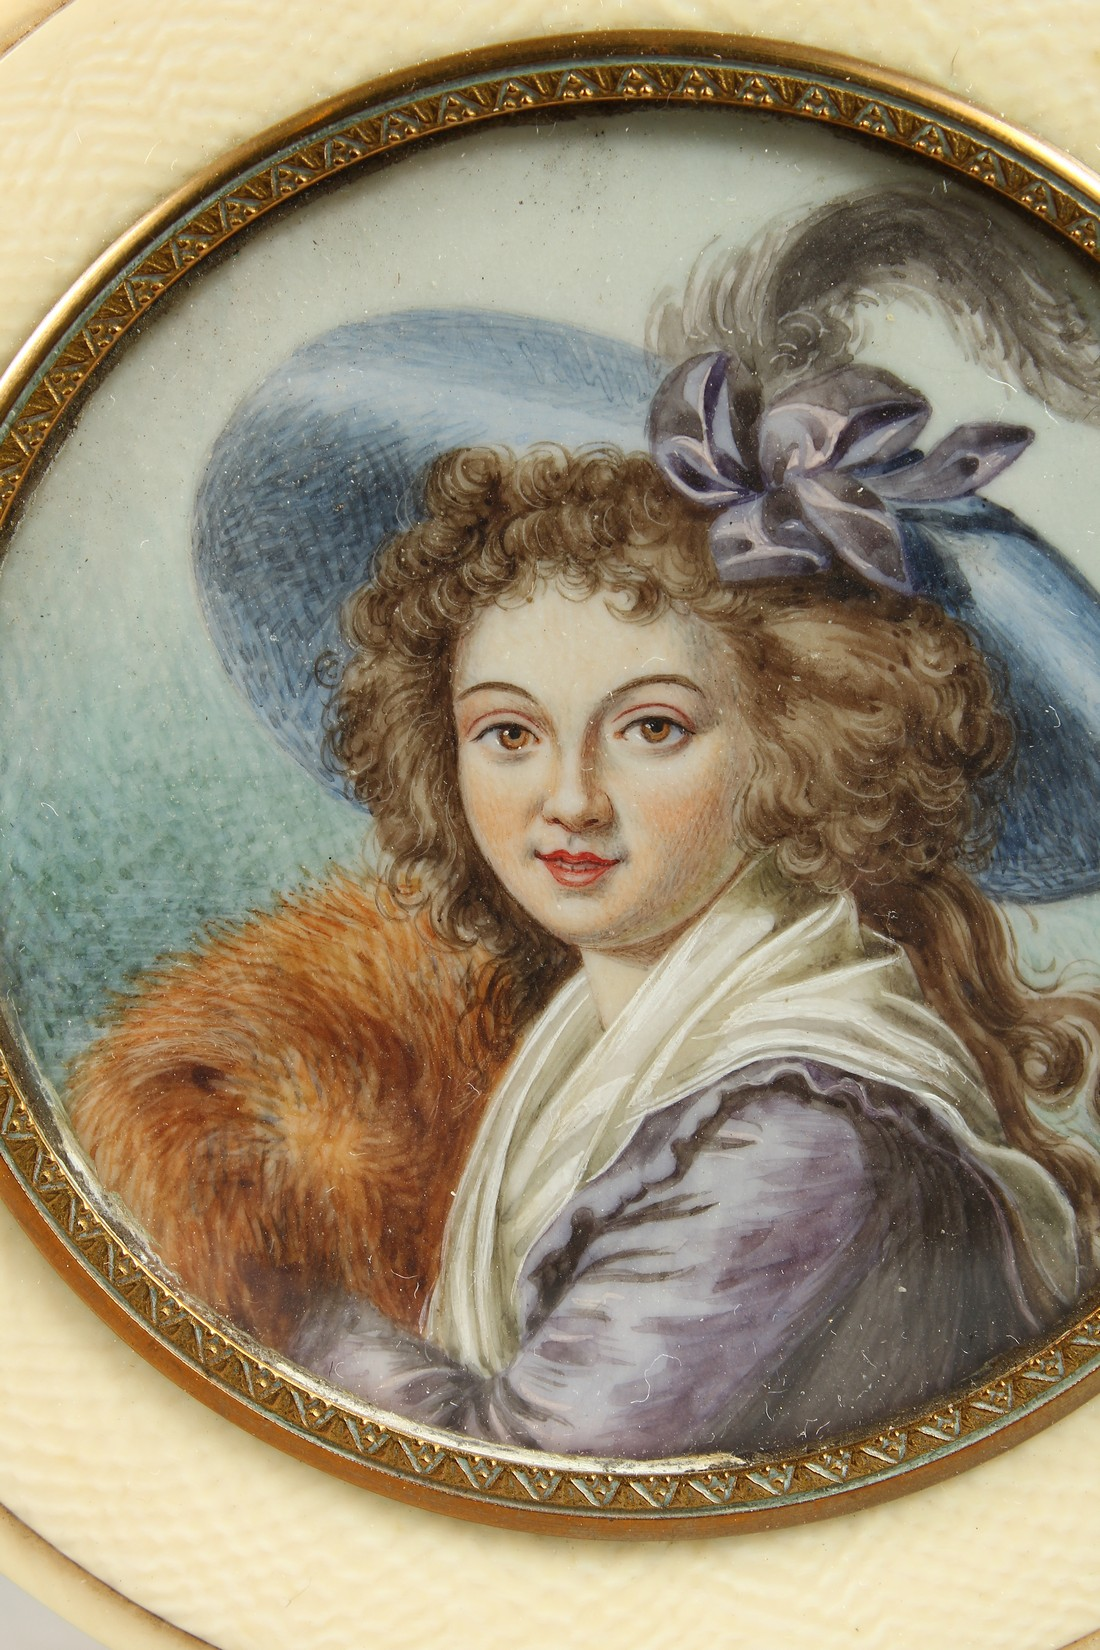 A GEORGIAN IVORY CIRCULAR BOX, the top painted with a portrait of a young lady in a plumed hat. 3ins - Image 2 of 8